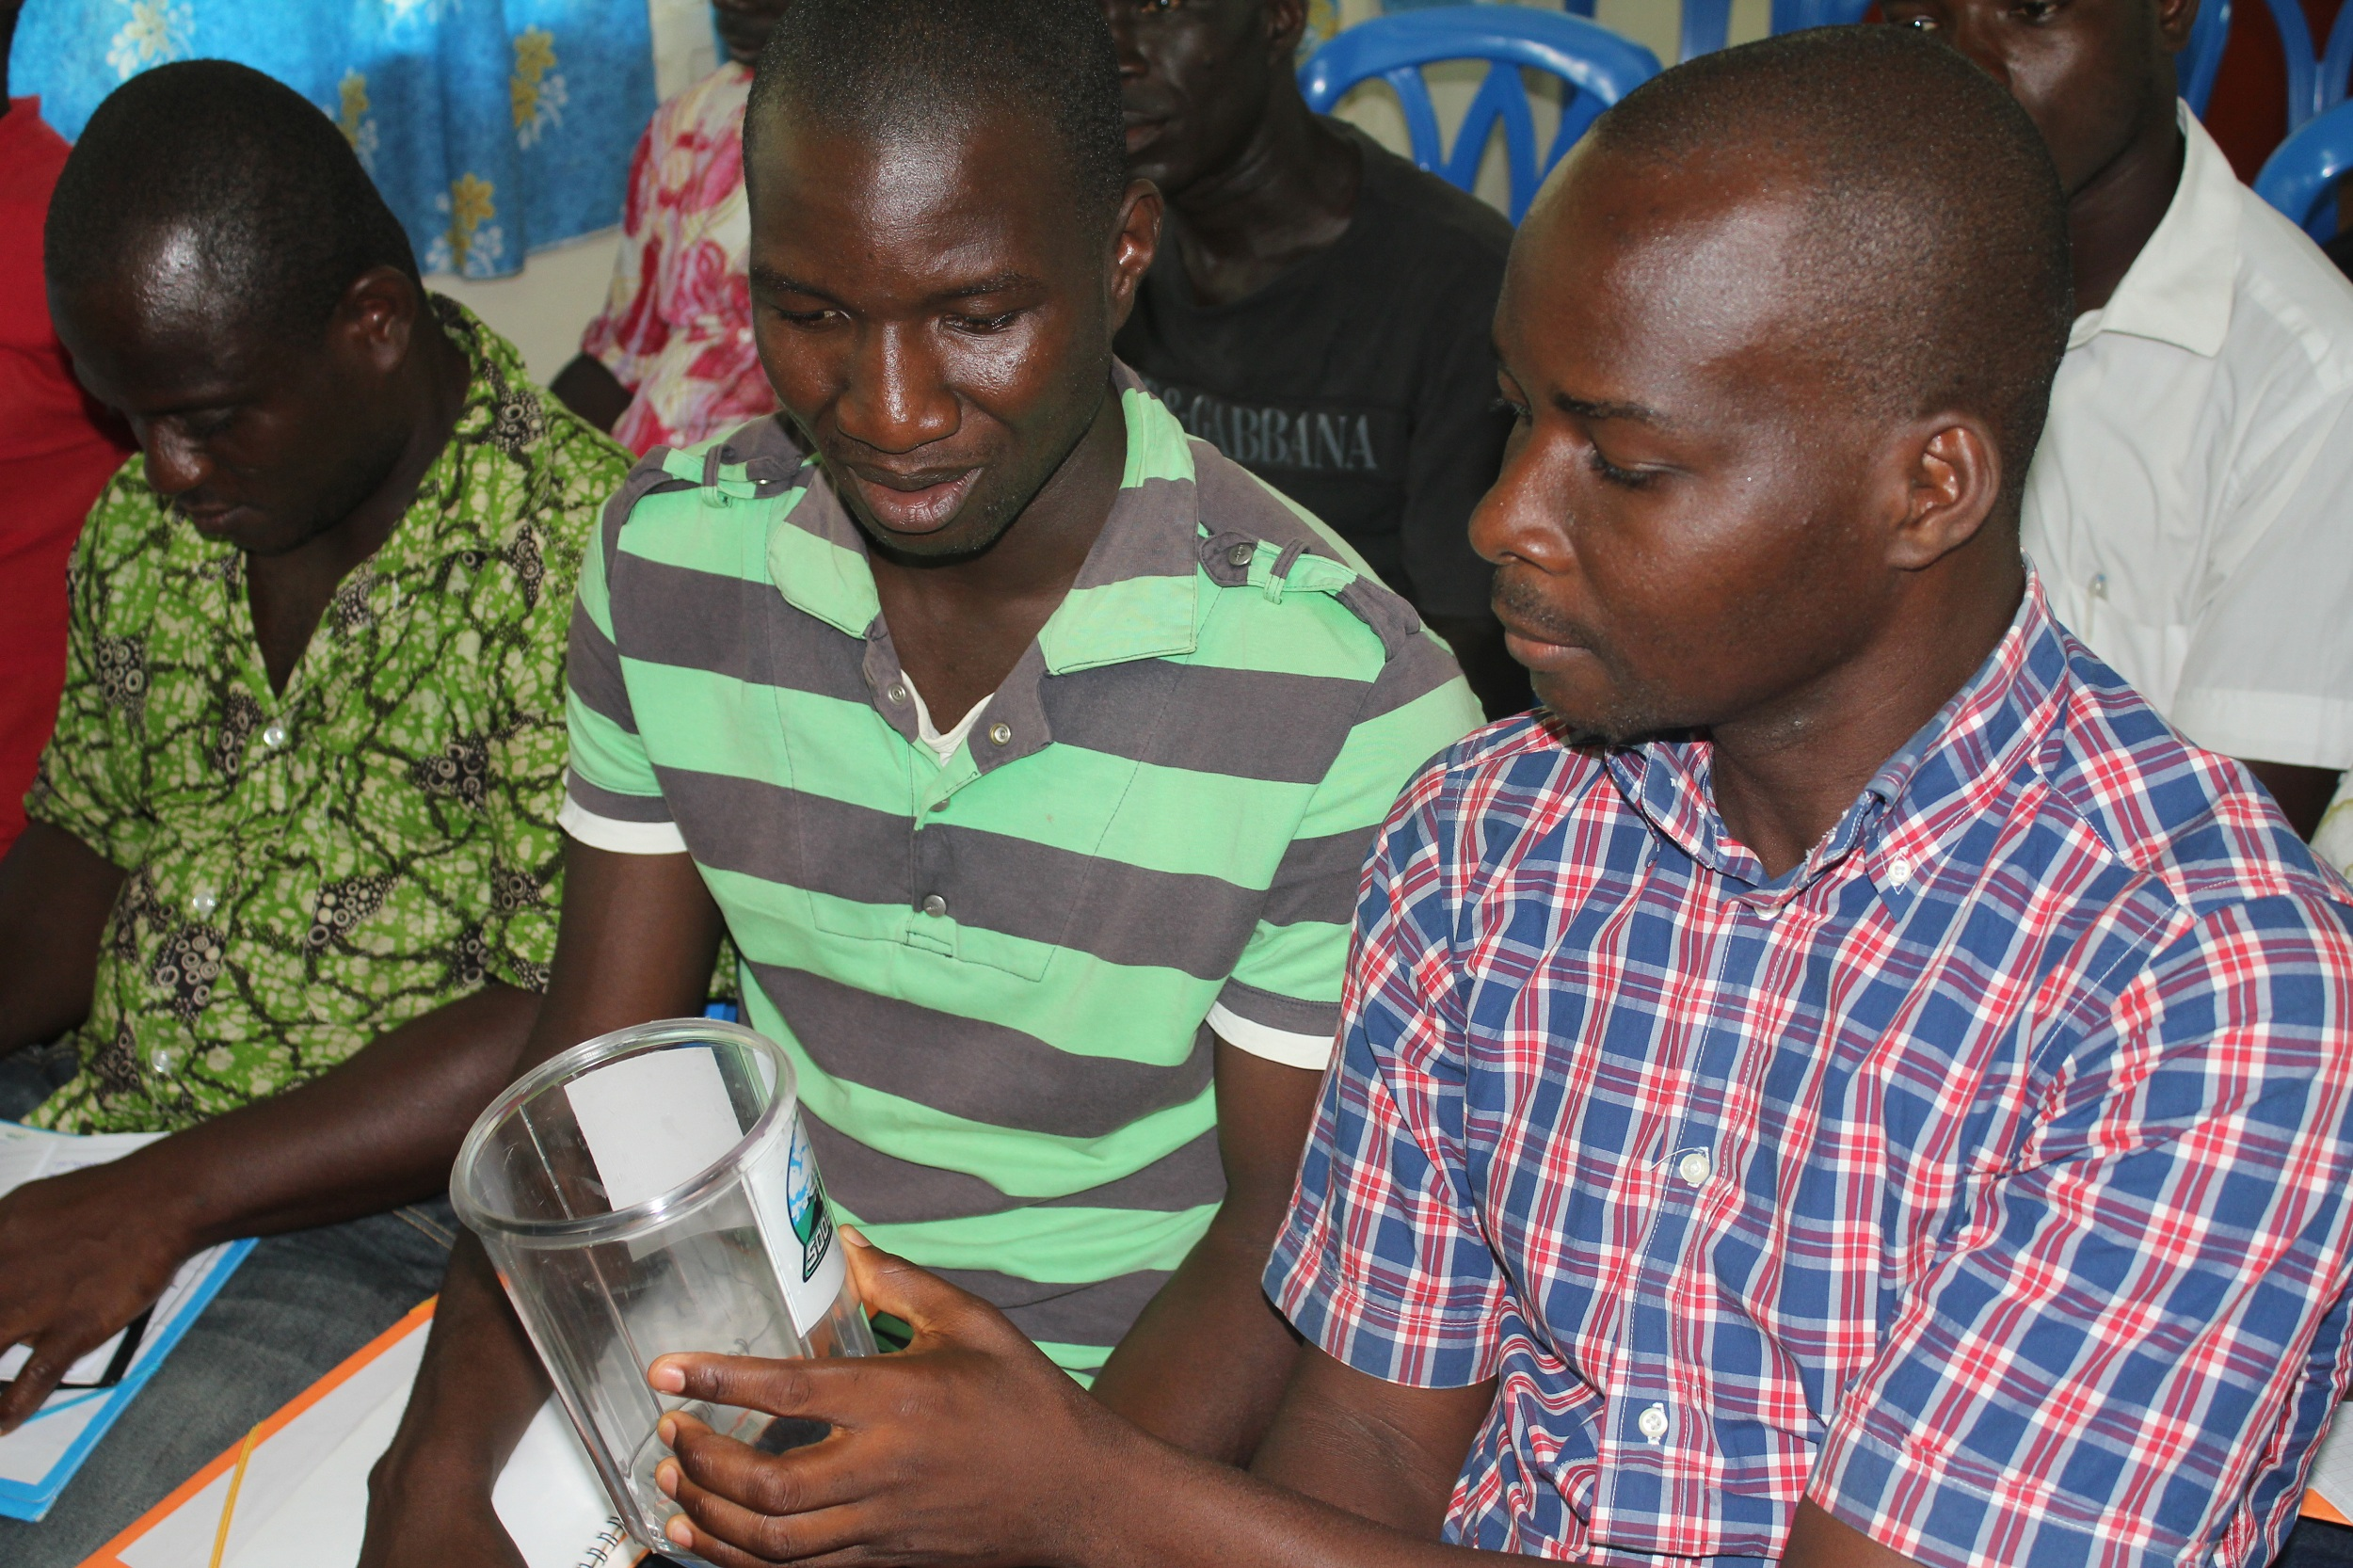 Farmers from all over the country gather in Bingerville to learn how to access accurate weather forecast information and how to measure rainfall by using rain gauges. Rainfall in Cote d'Ivoire has dropped 15 percent in a decade according to the National W